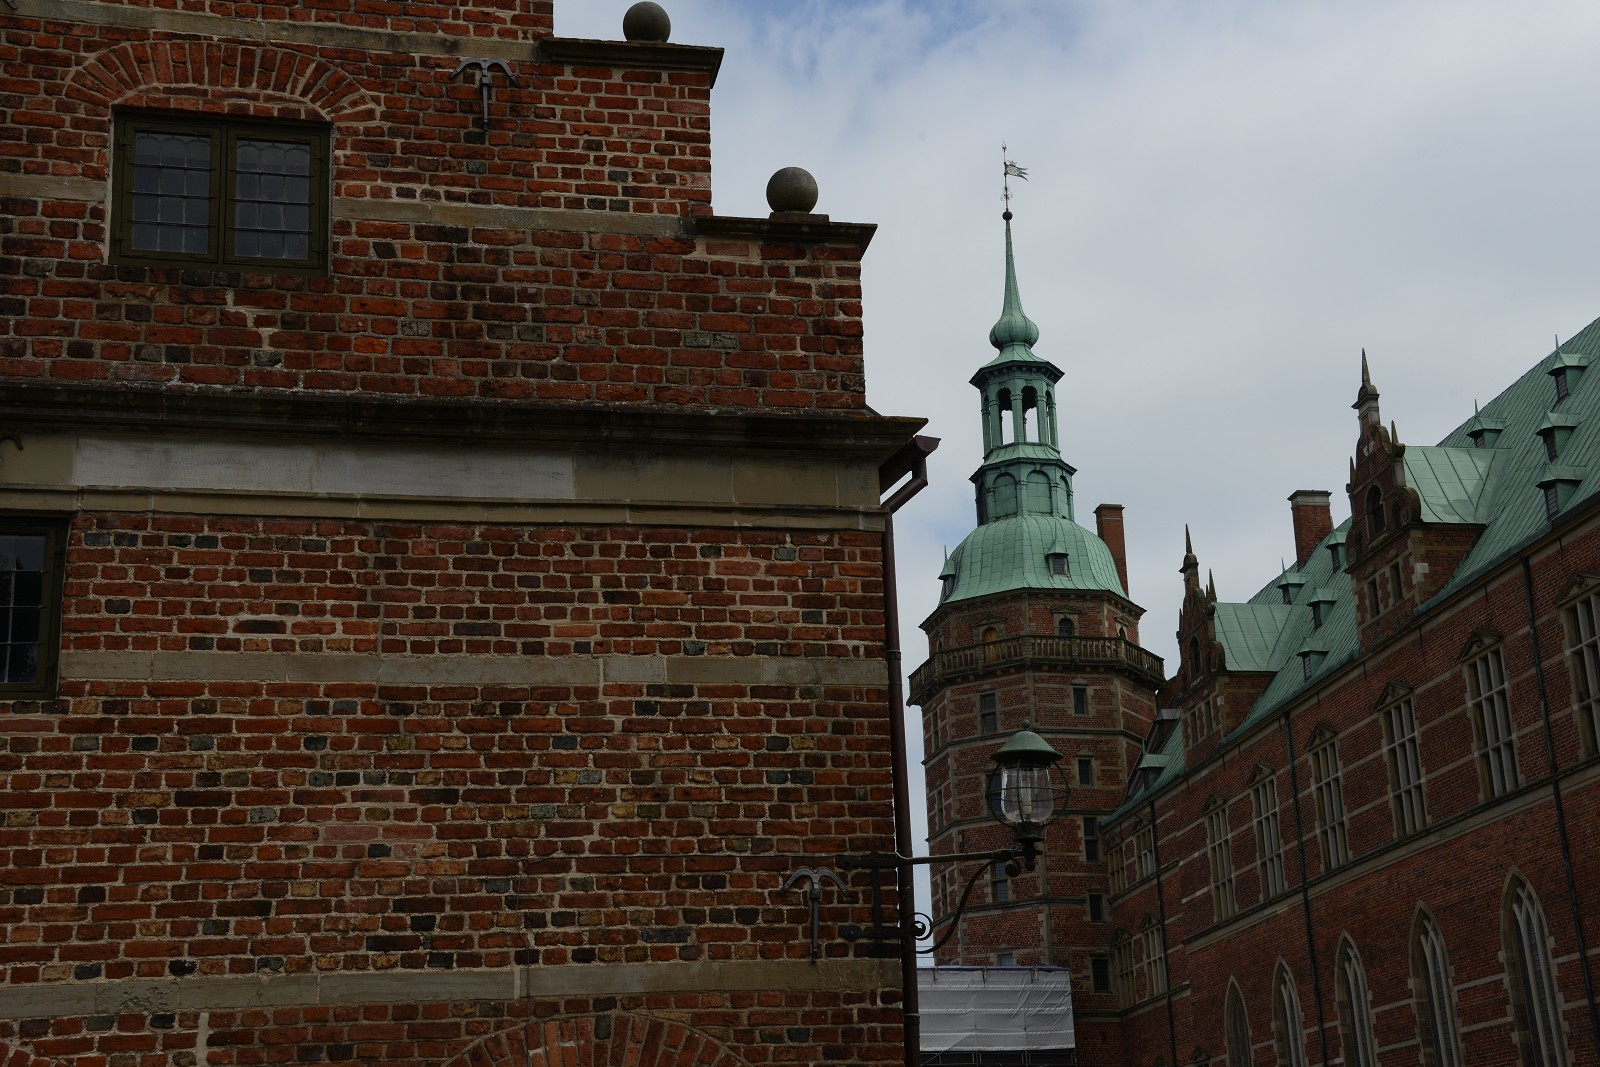 The museum of national history at frederiksborg castle copenhagen - The Museum Of National History At Frederiksborg Castle Copenhagen 21